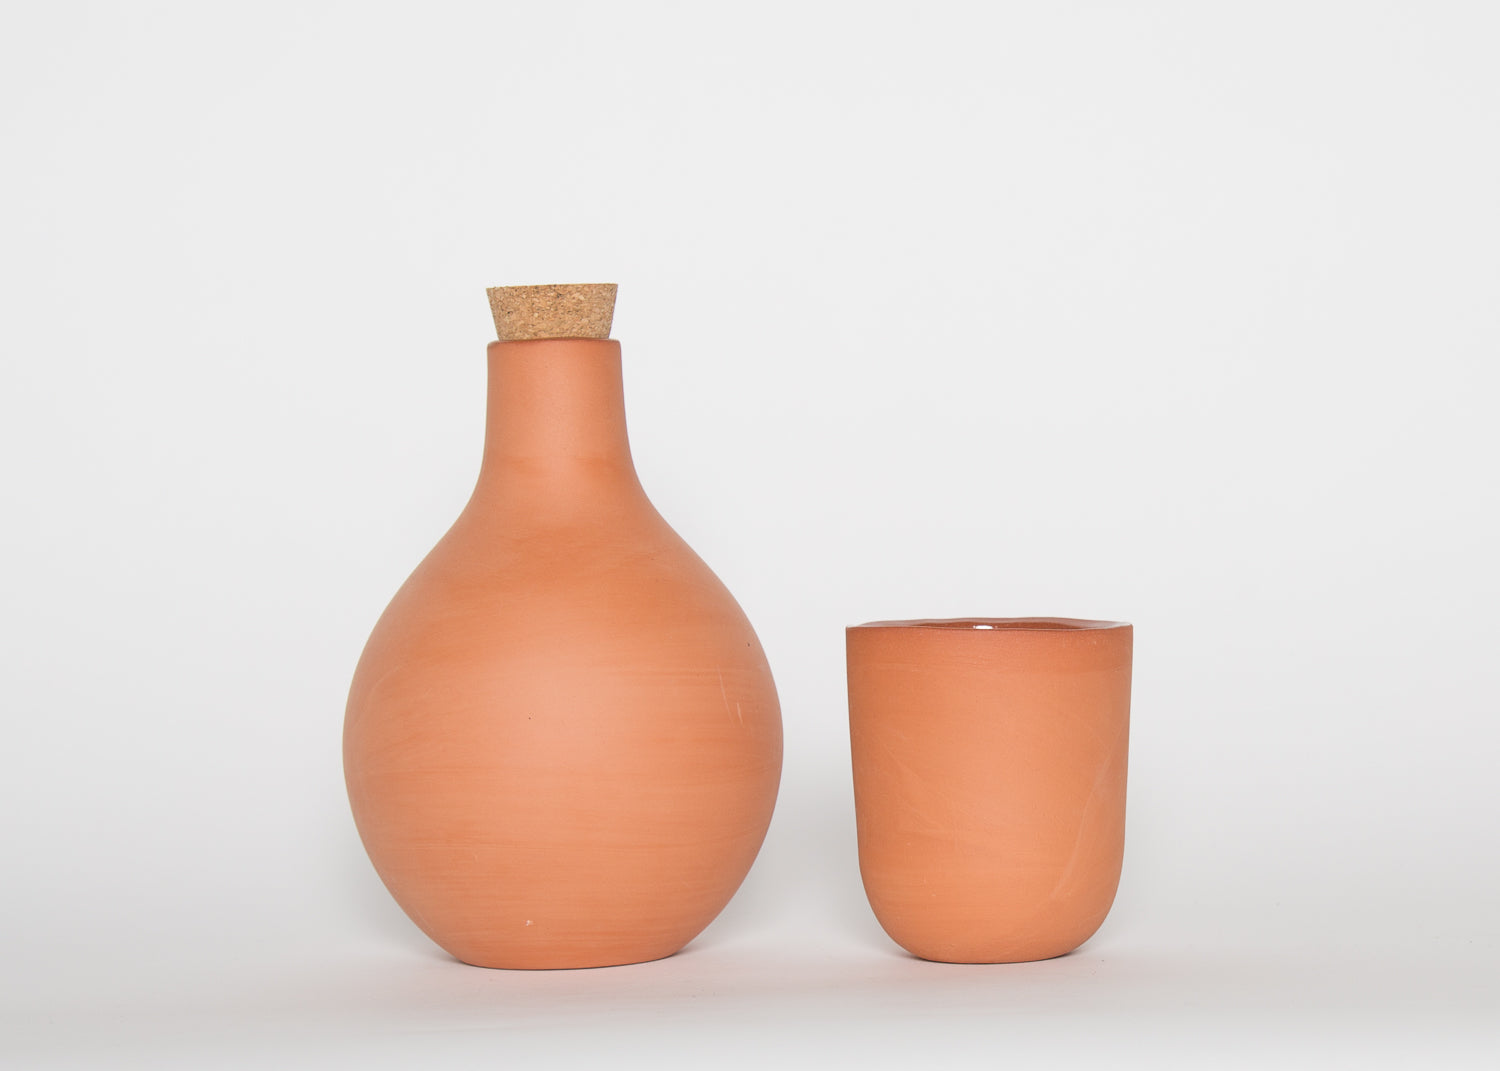 Barter Cork Top Terracotta Vessel 1 Liter